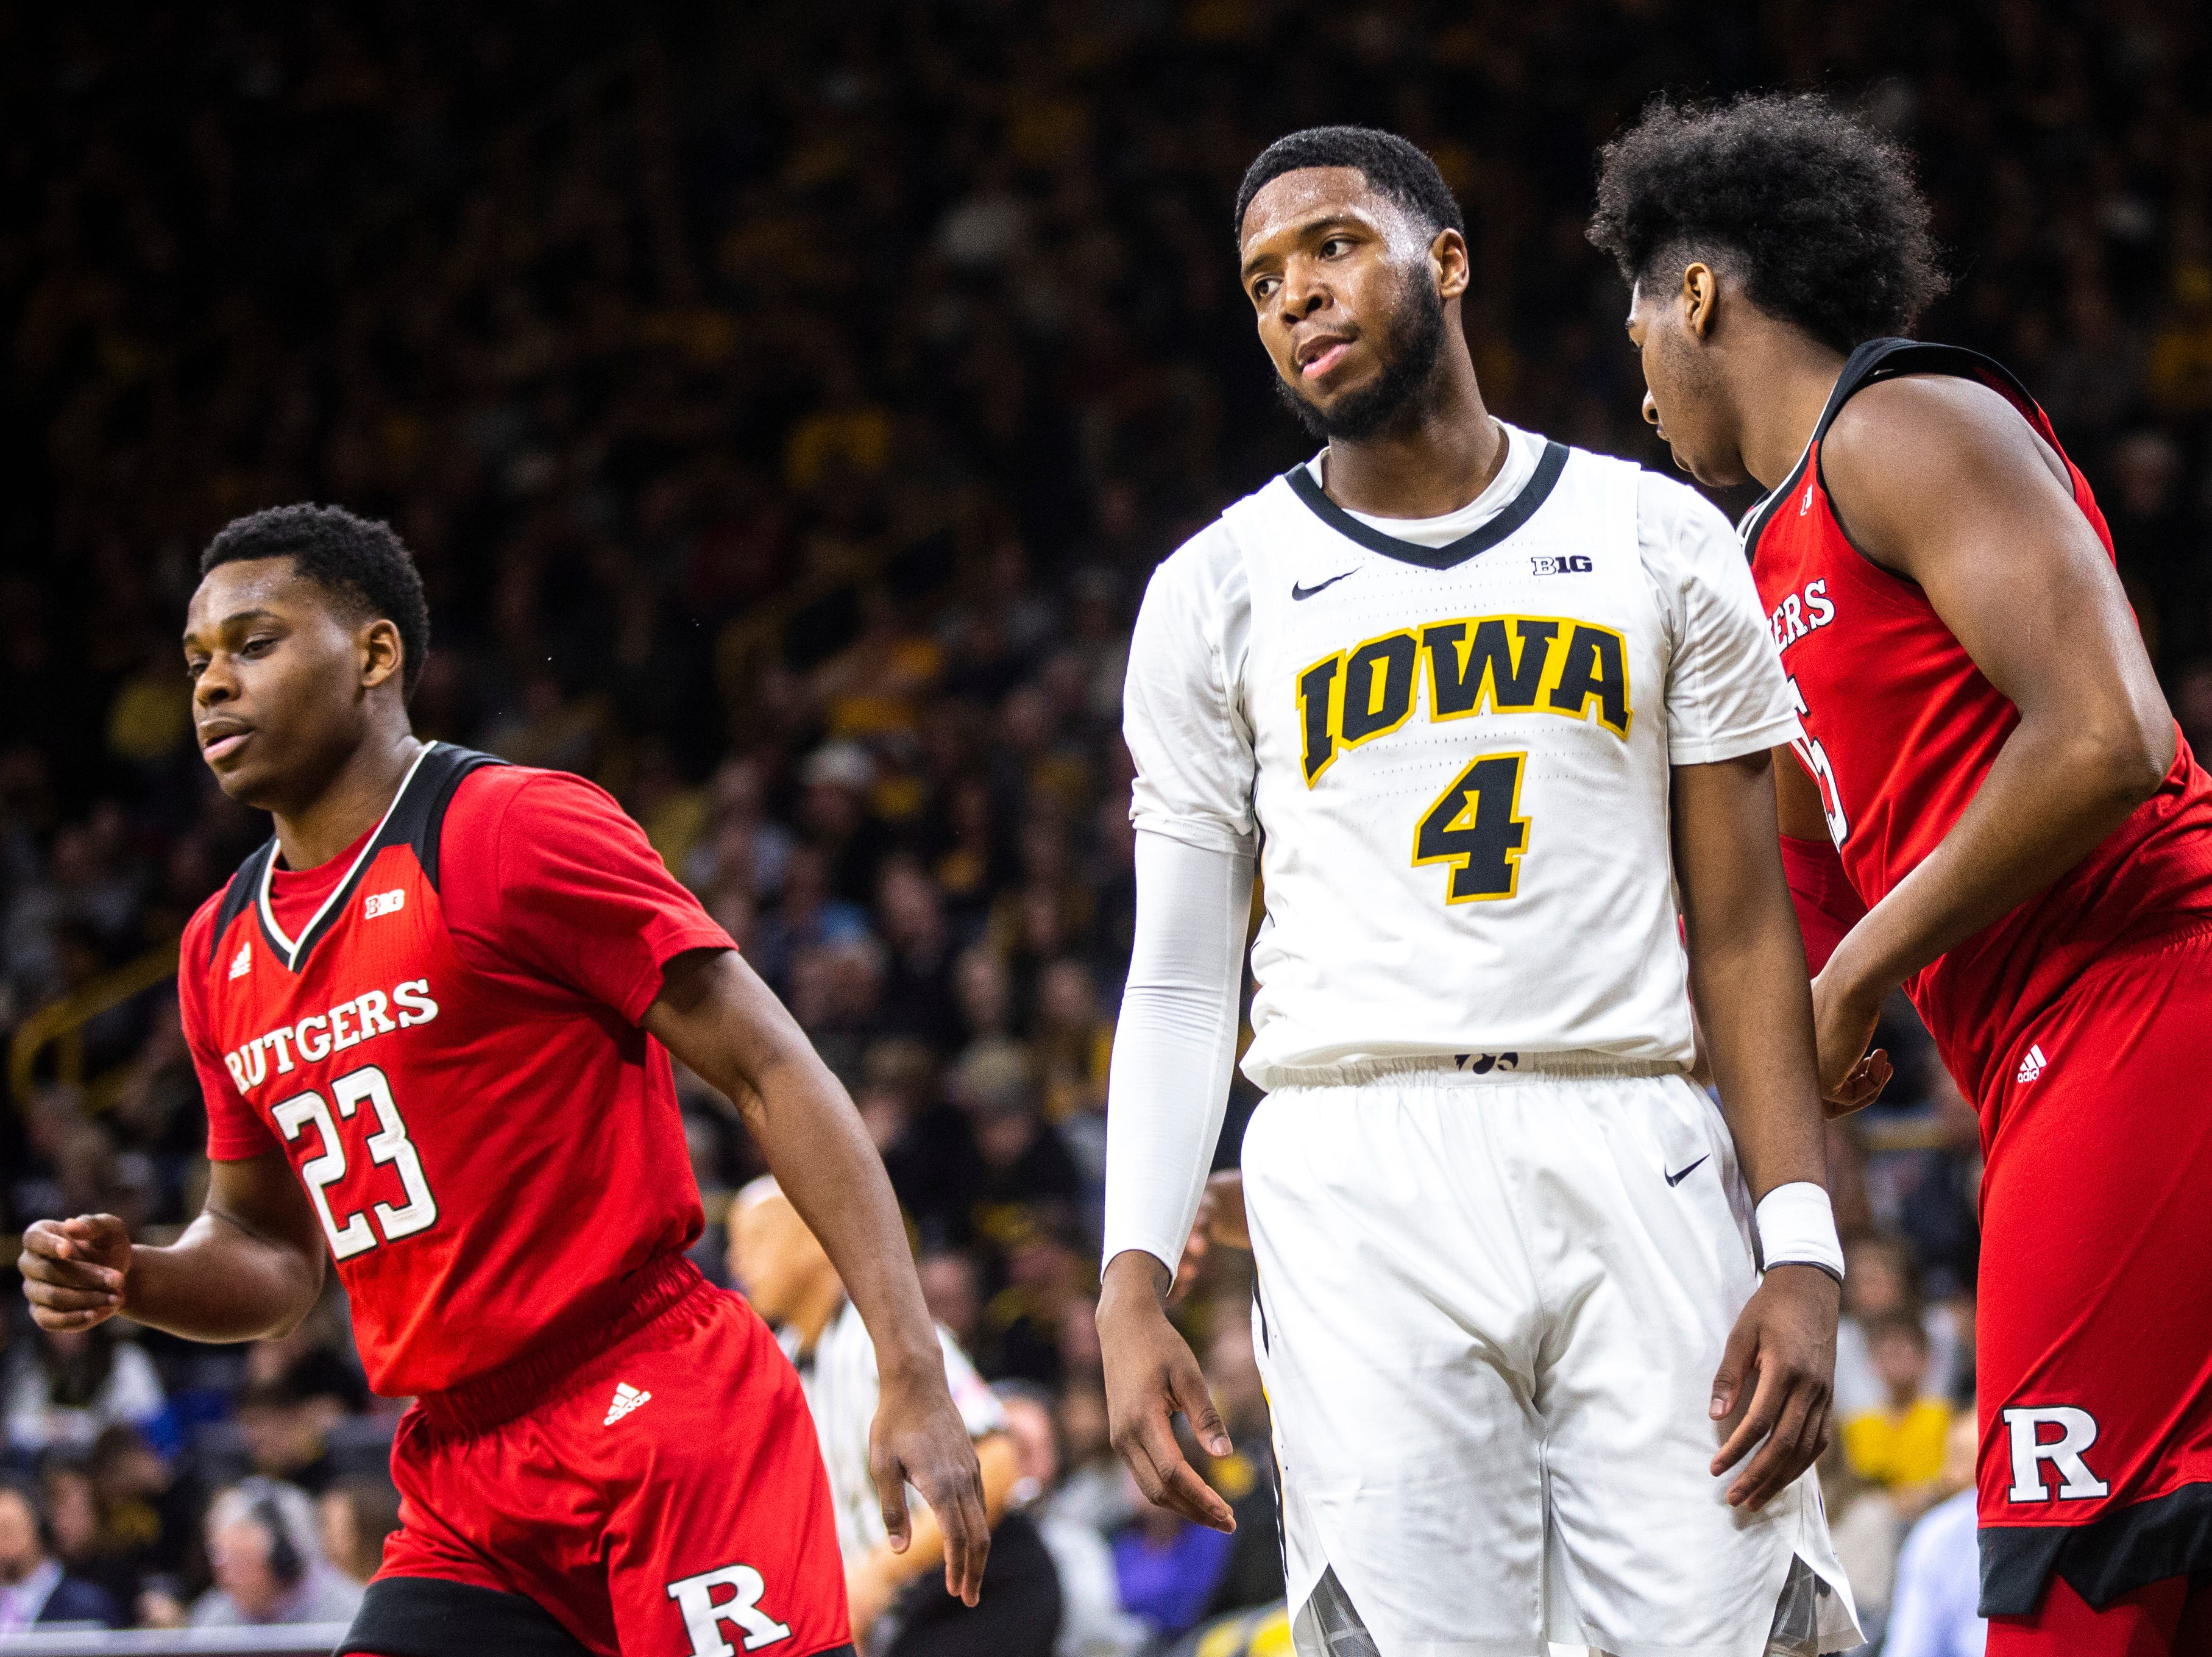 Iowa guard Isaiah Moss (4) reacts after Rutgers guard Montez Mathis (23) made a shot during a NCAA Big Ten Conference men's basketball game on Saturday, March 2, 2019, at Carver-Hawkeye Arena in Iowa City, Iowa.